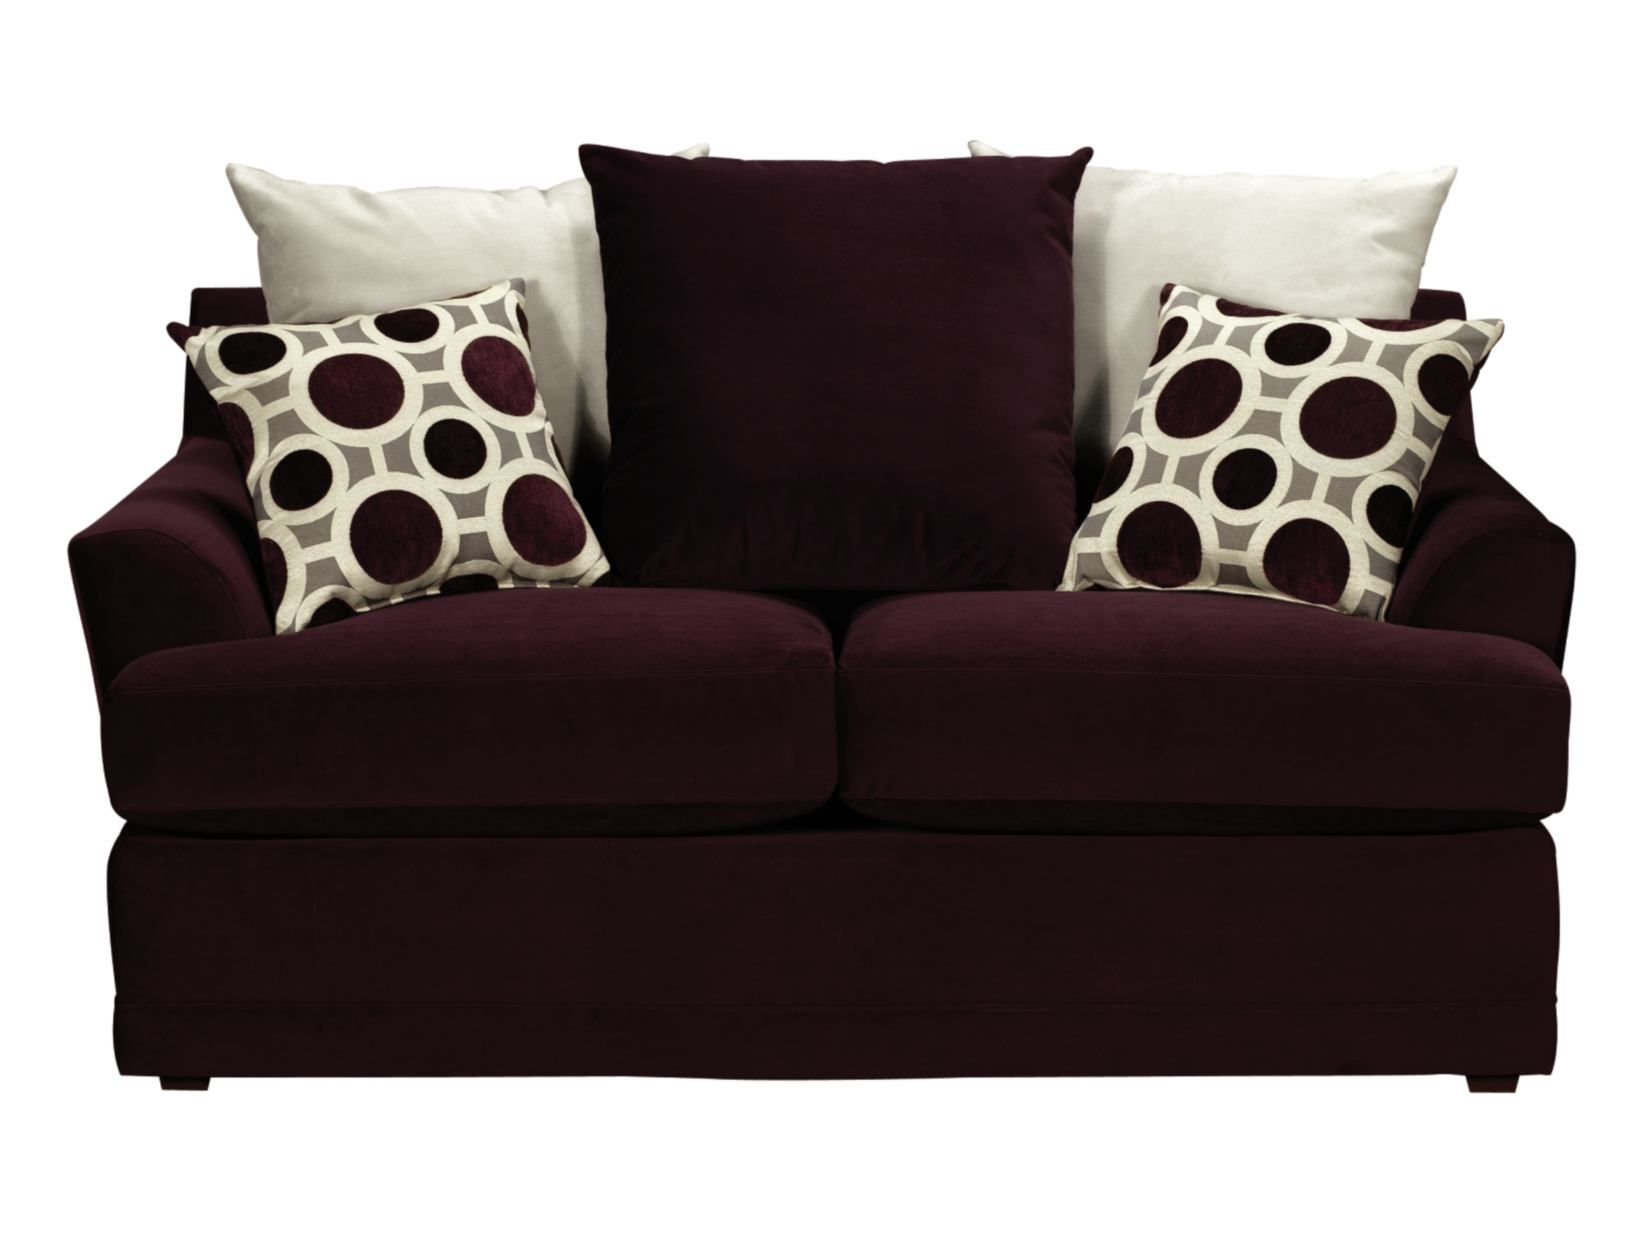 shipping overstock today classic product chesterfield plum nailhead loveseat garden home free